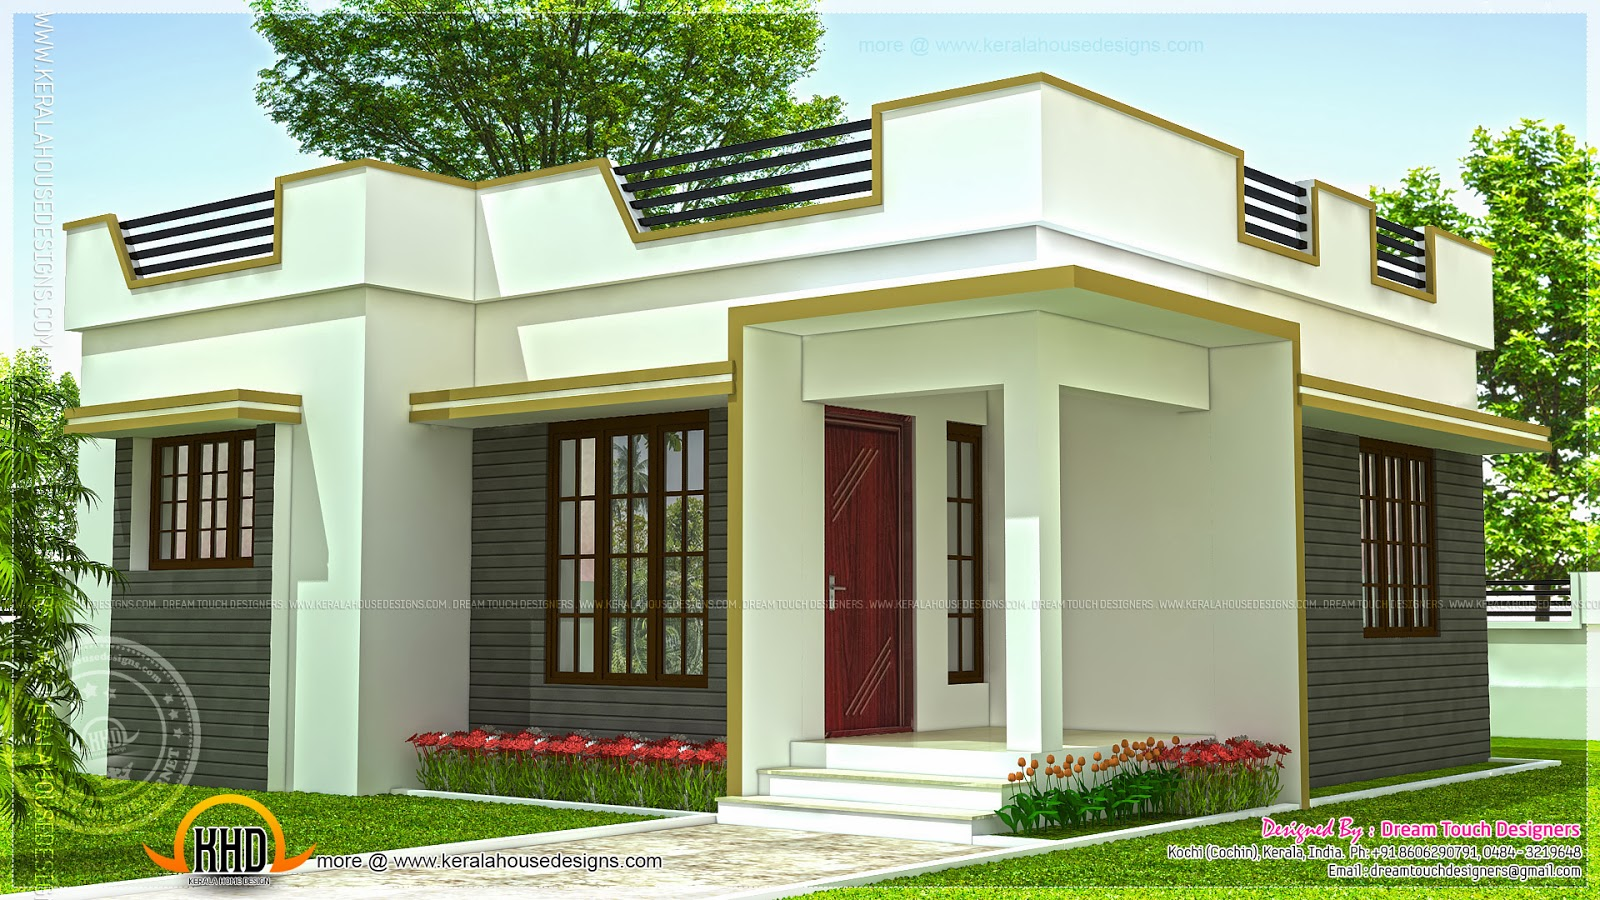 35 small and simple but beautiful house with roof deck - Small Houses Design